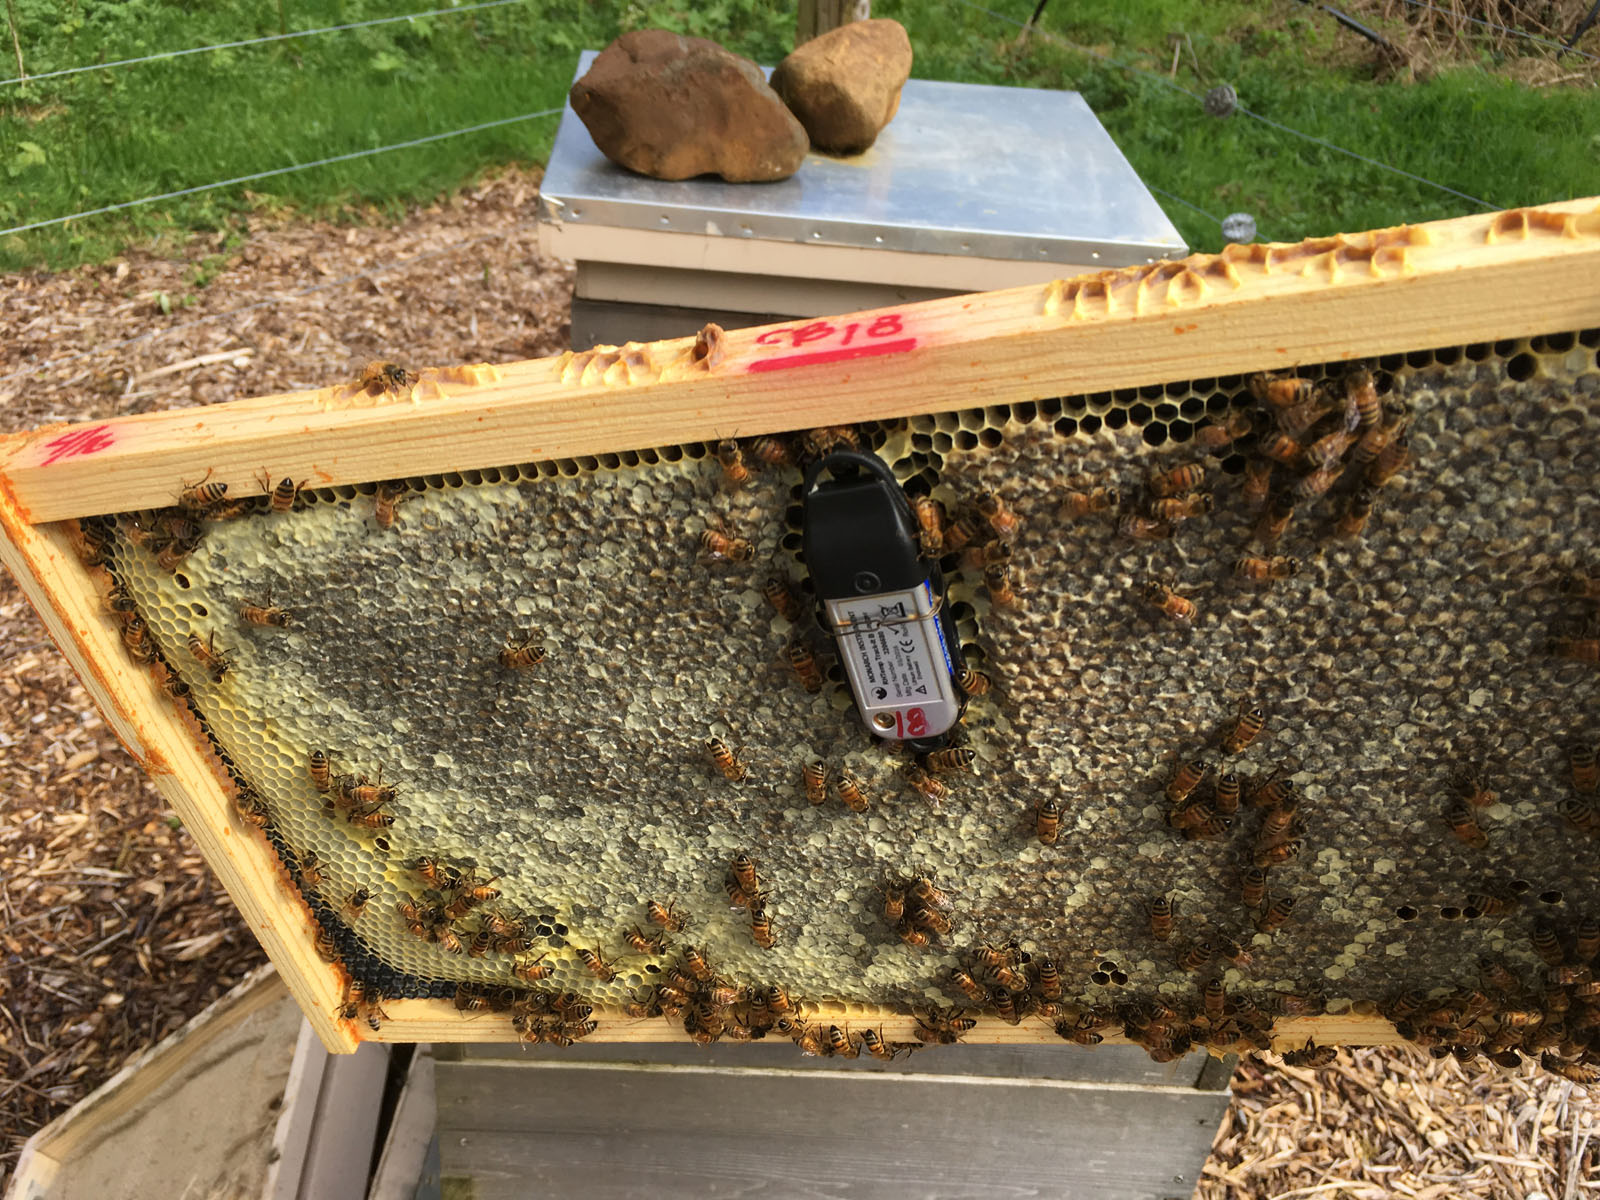 Spring is here, and the bees have awoken from their long winter's nap. April 1 was the official end for the data recording period for the Cozy Bee Project.